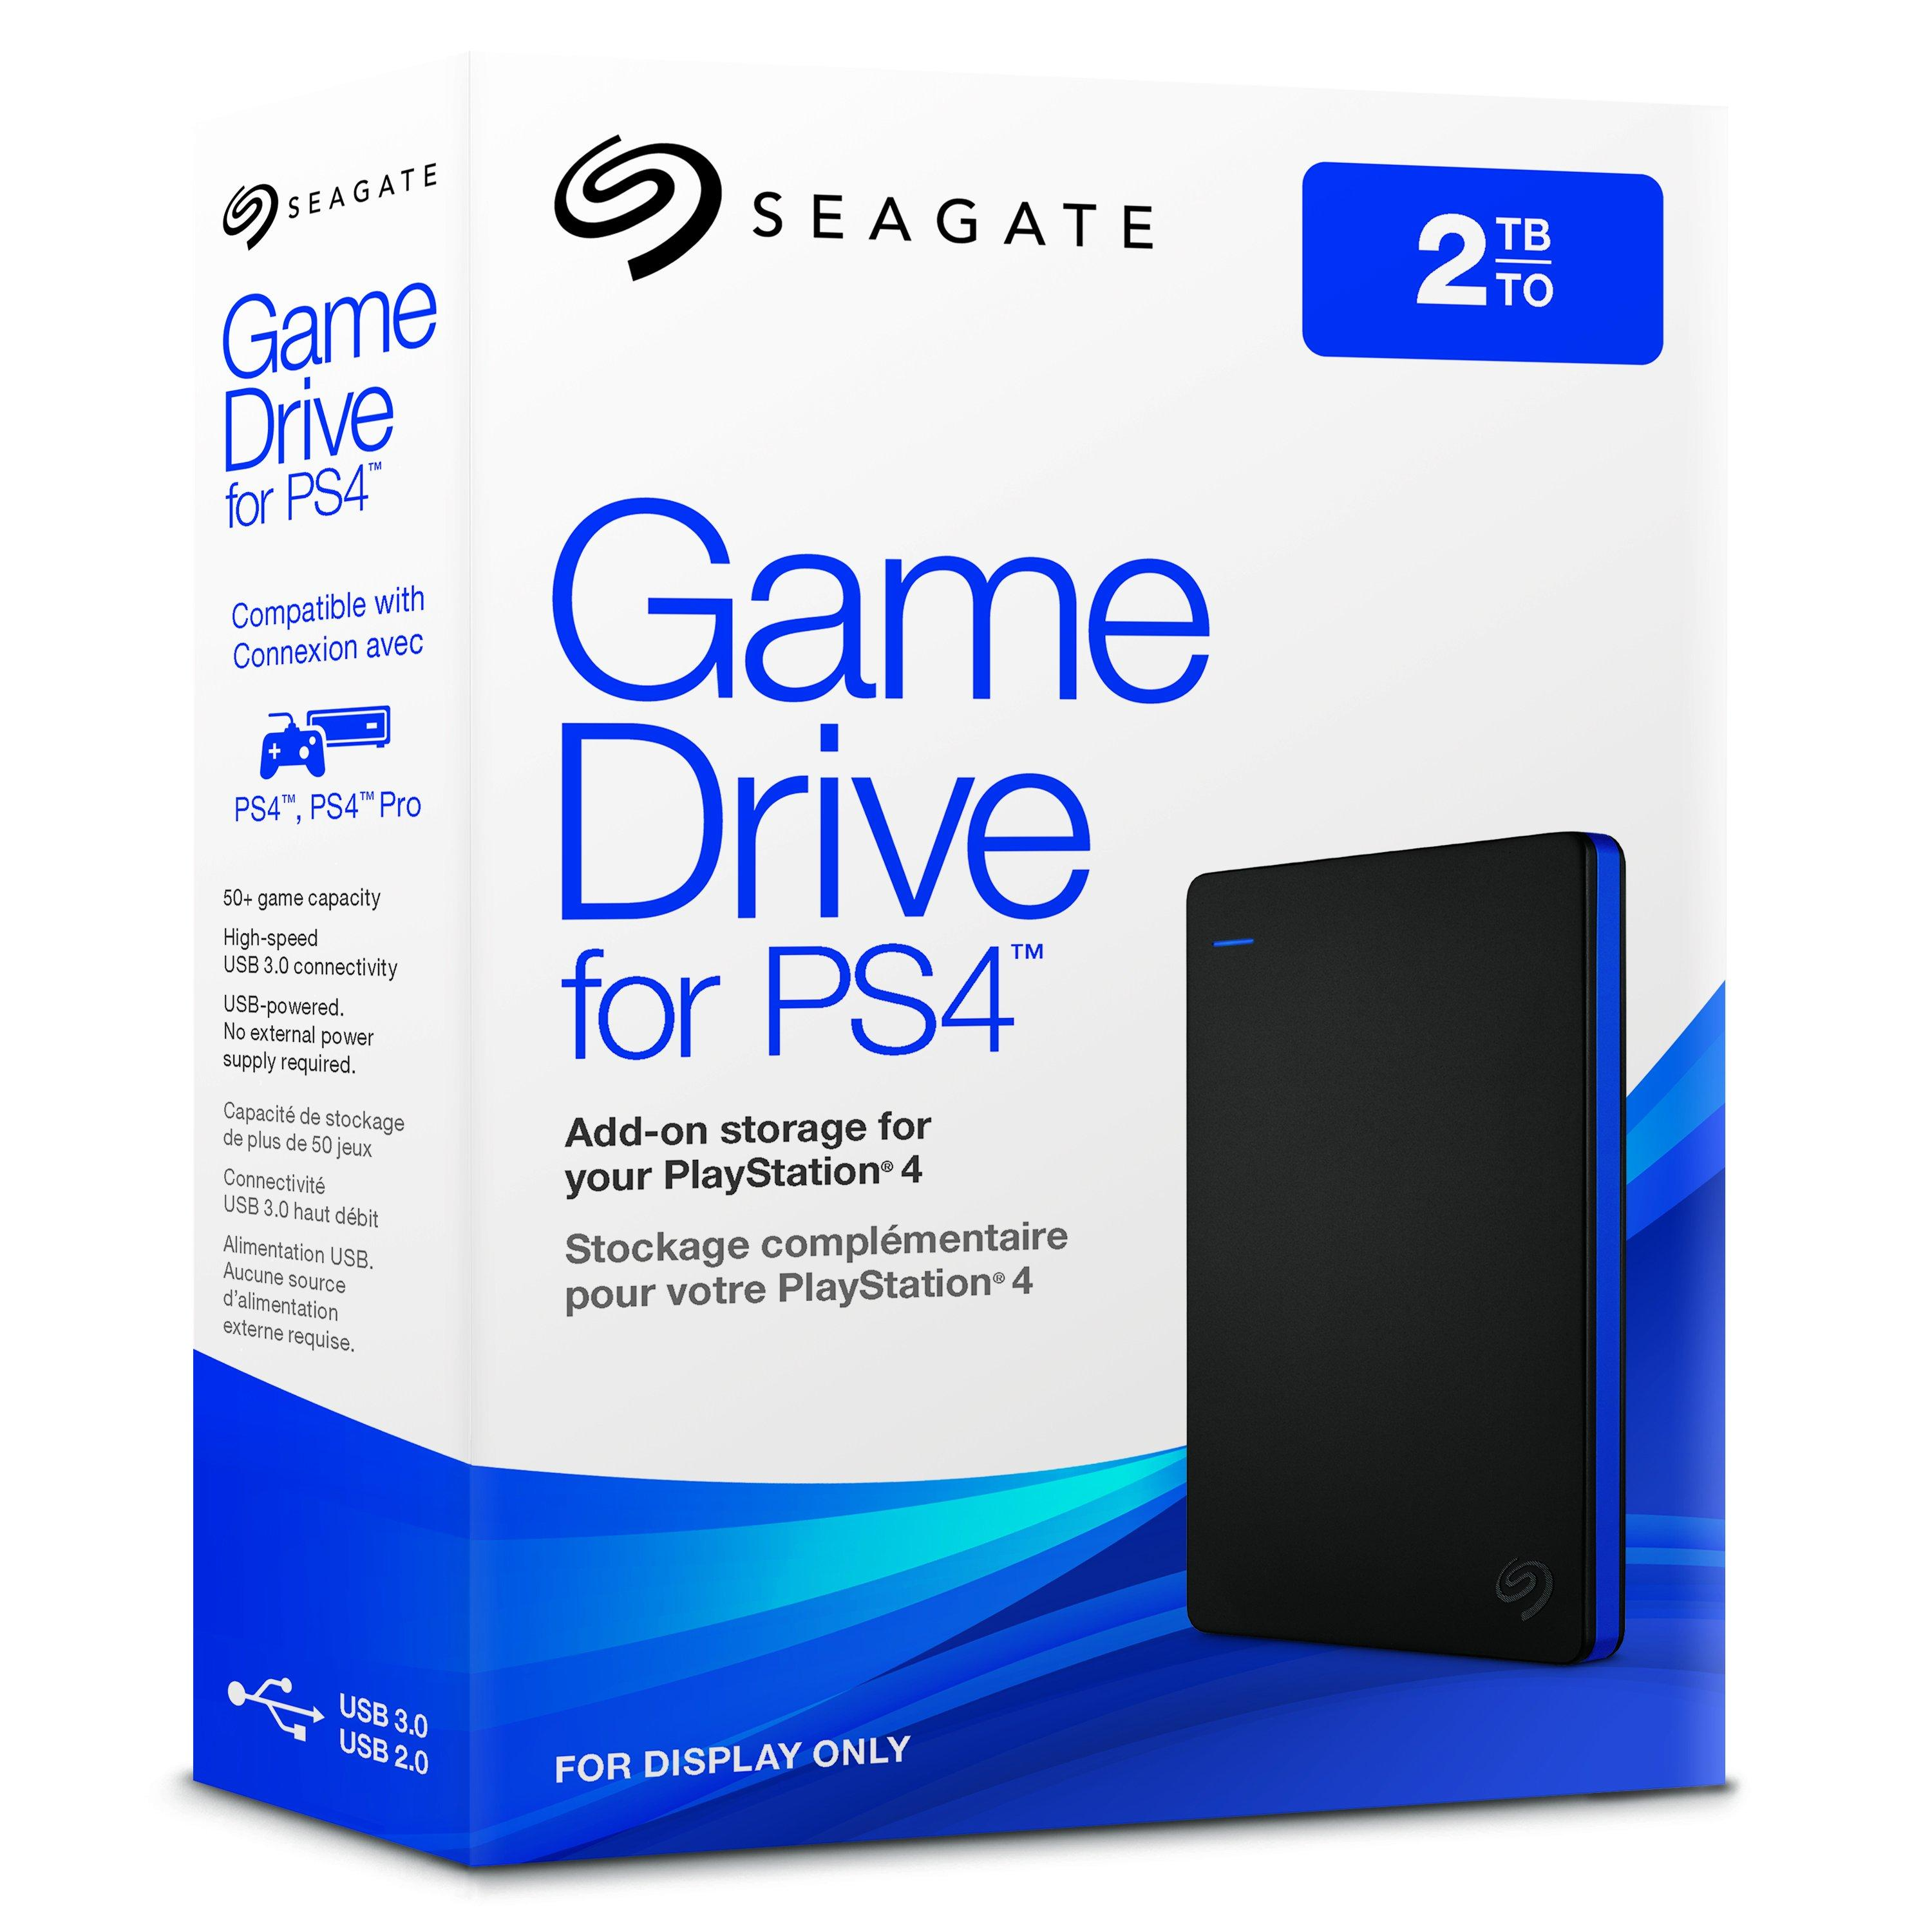 STGD2000400 Seagate 2TB Game Drive for PlayStation 4 Portable External USB HD